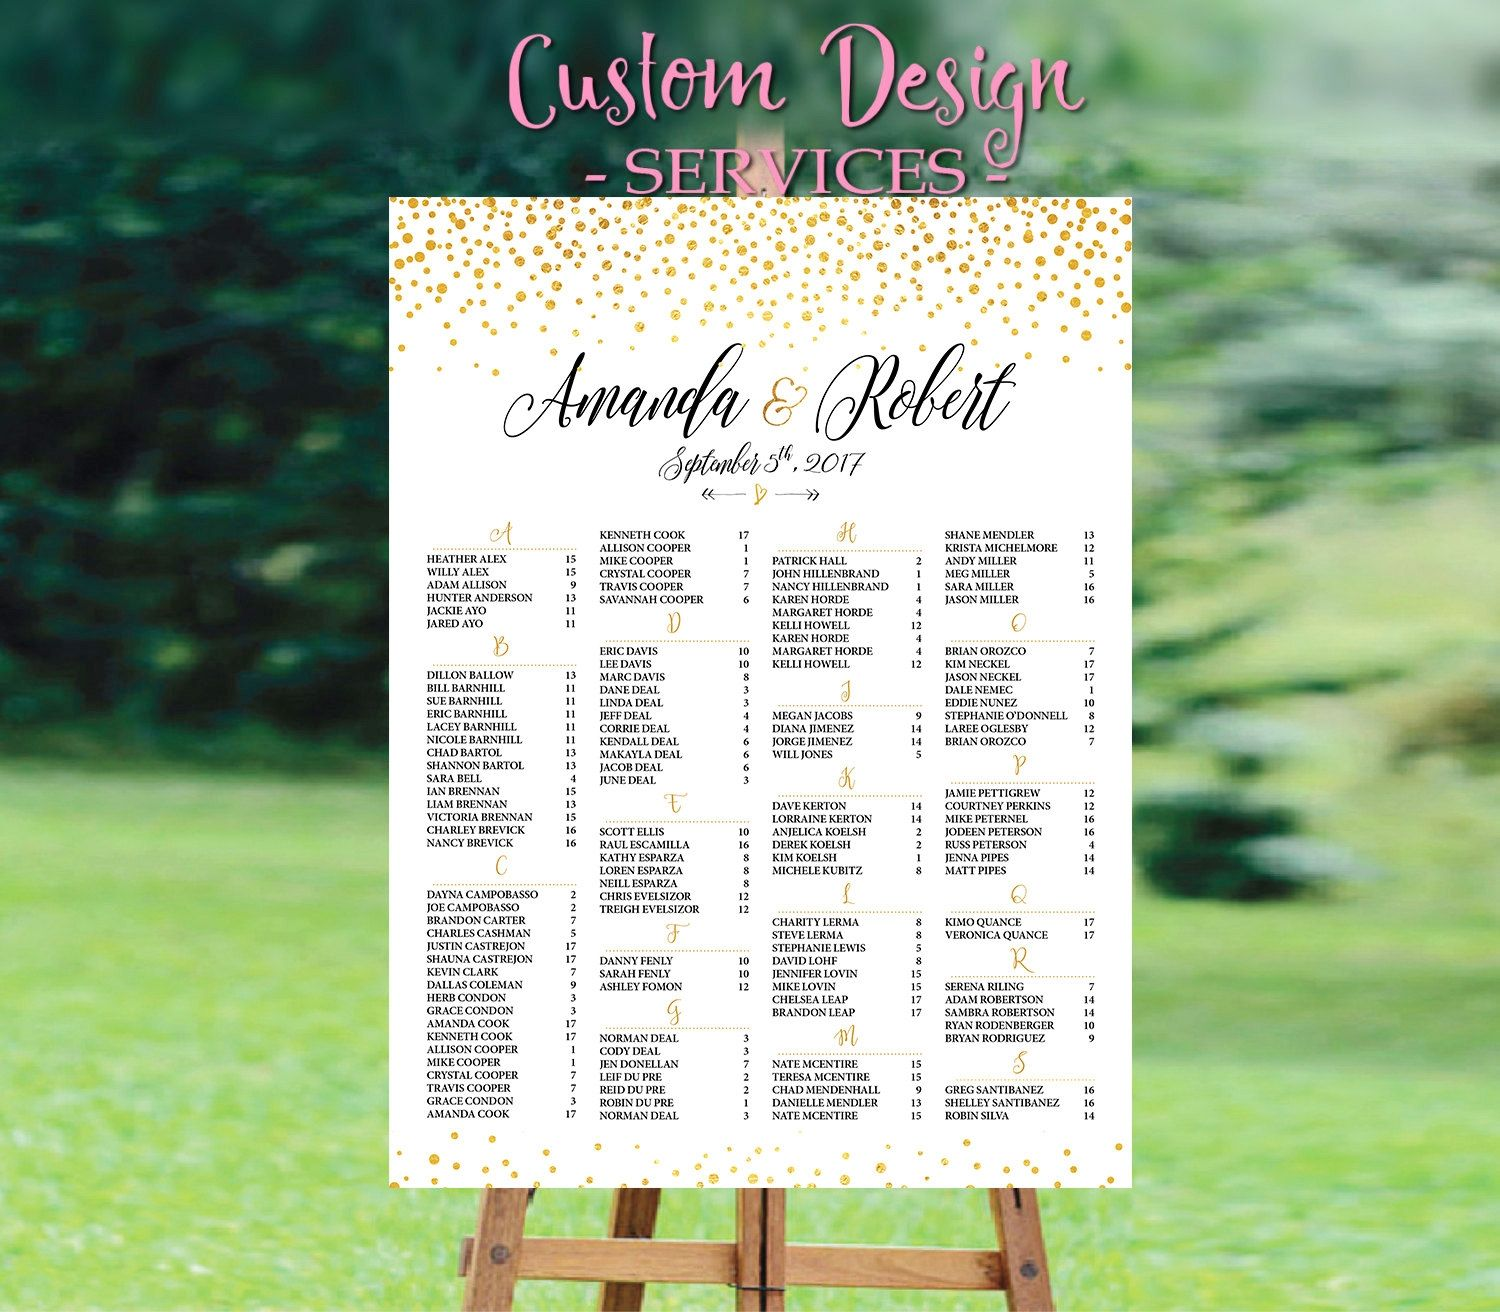 Wedding seating chart template Wedding seating chart poster – Seating Chart Poster Template